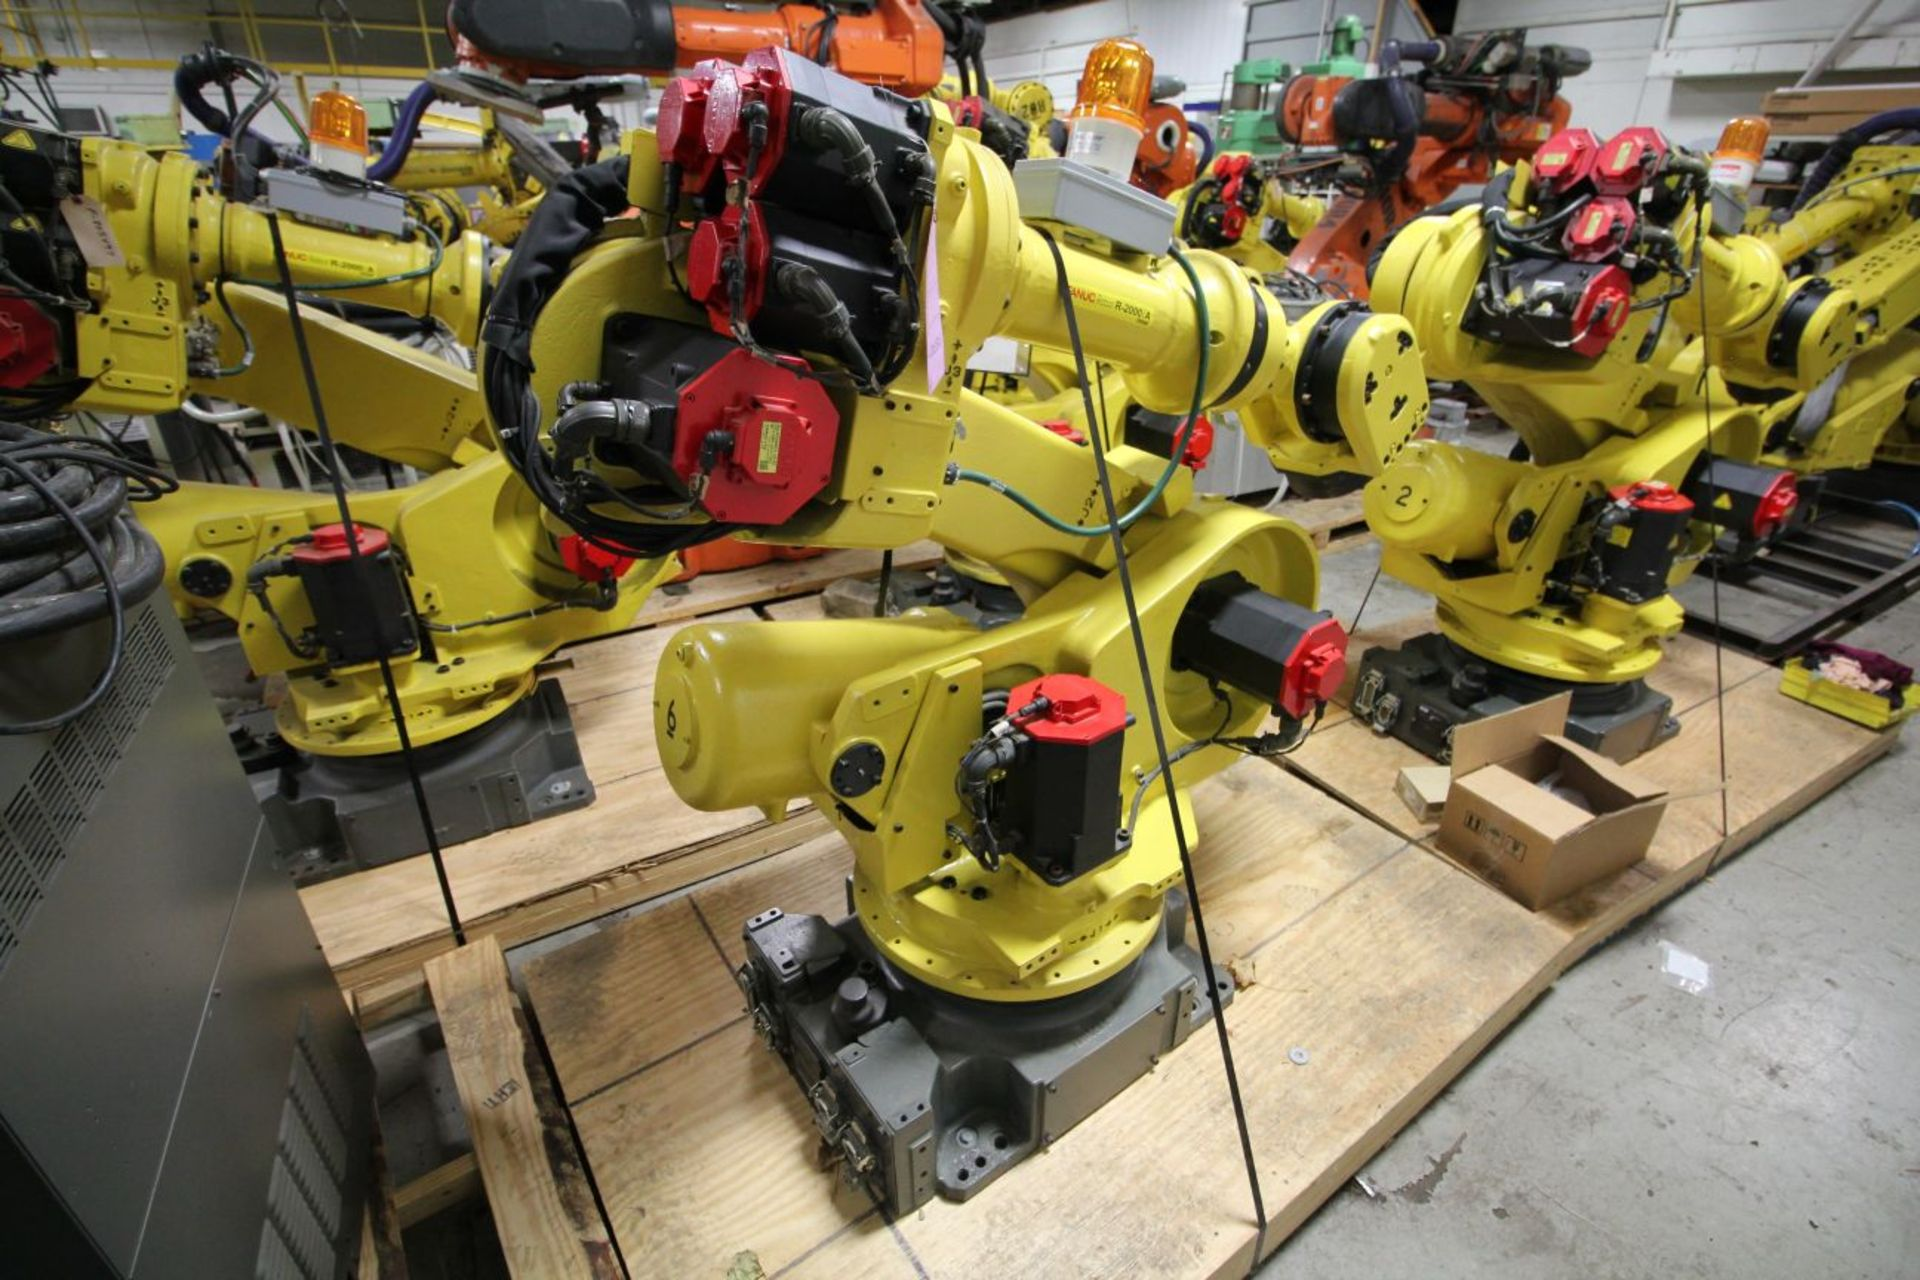 Lot 34 - FANUC ROBOT R2000iA/200FO WITH R-J3iB CONTROLS, TEACH & CABLES, YEAR 2006, SN 80550, COMP. REFURBED.